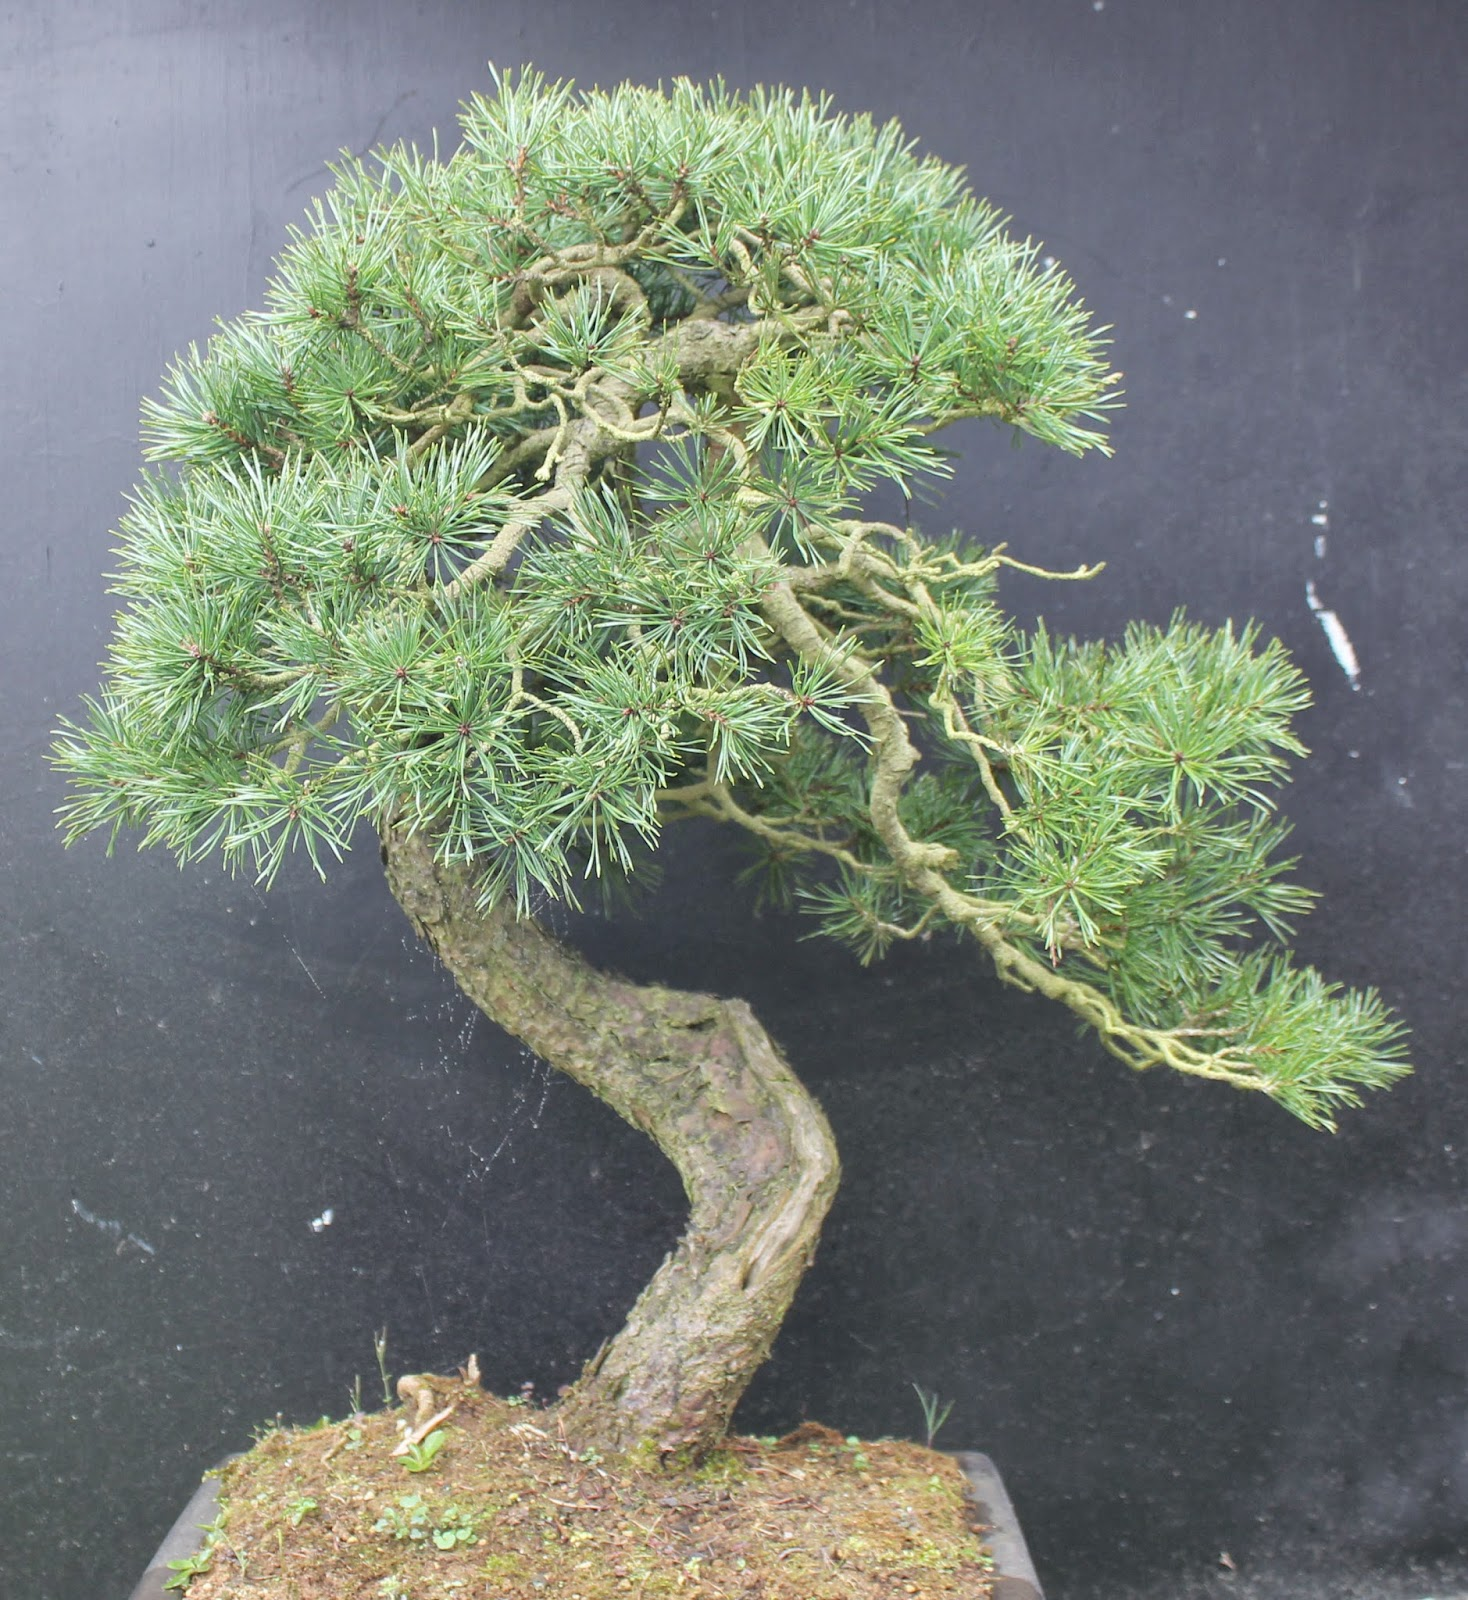 Wildwoodbonsai April 2011